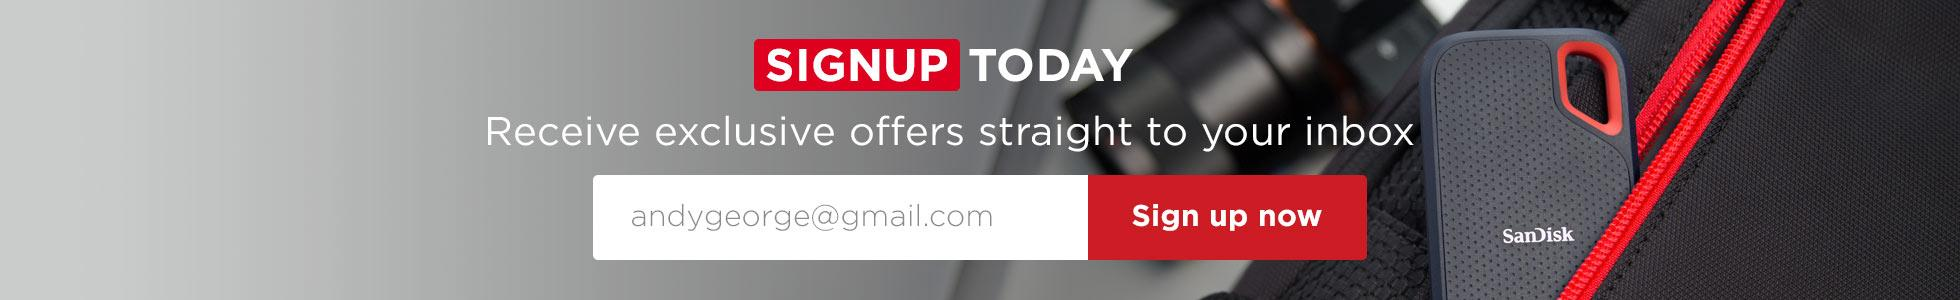 Signup today! Receive exclusive offers straight to your inbox